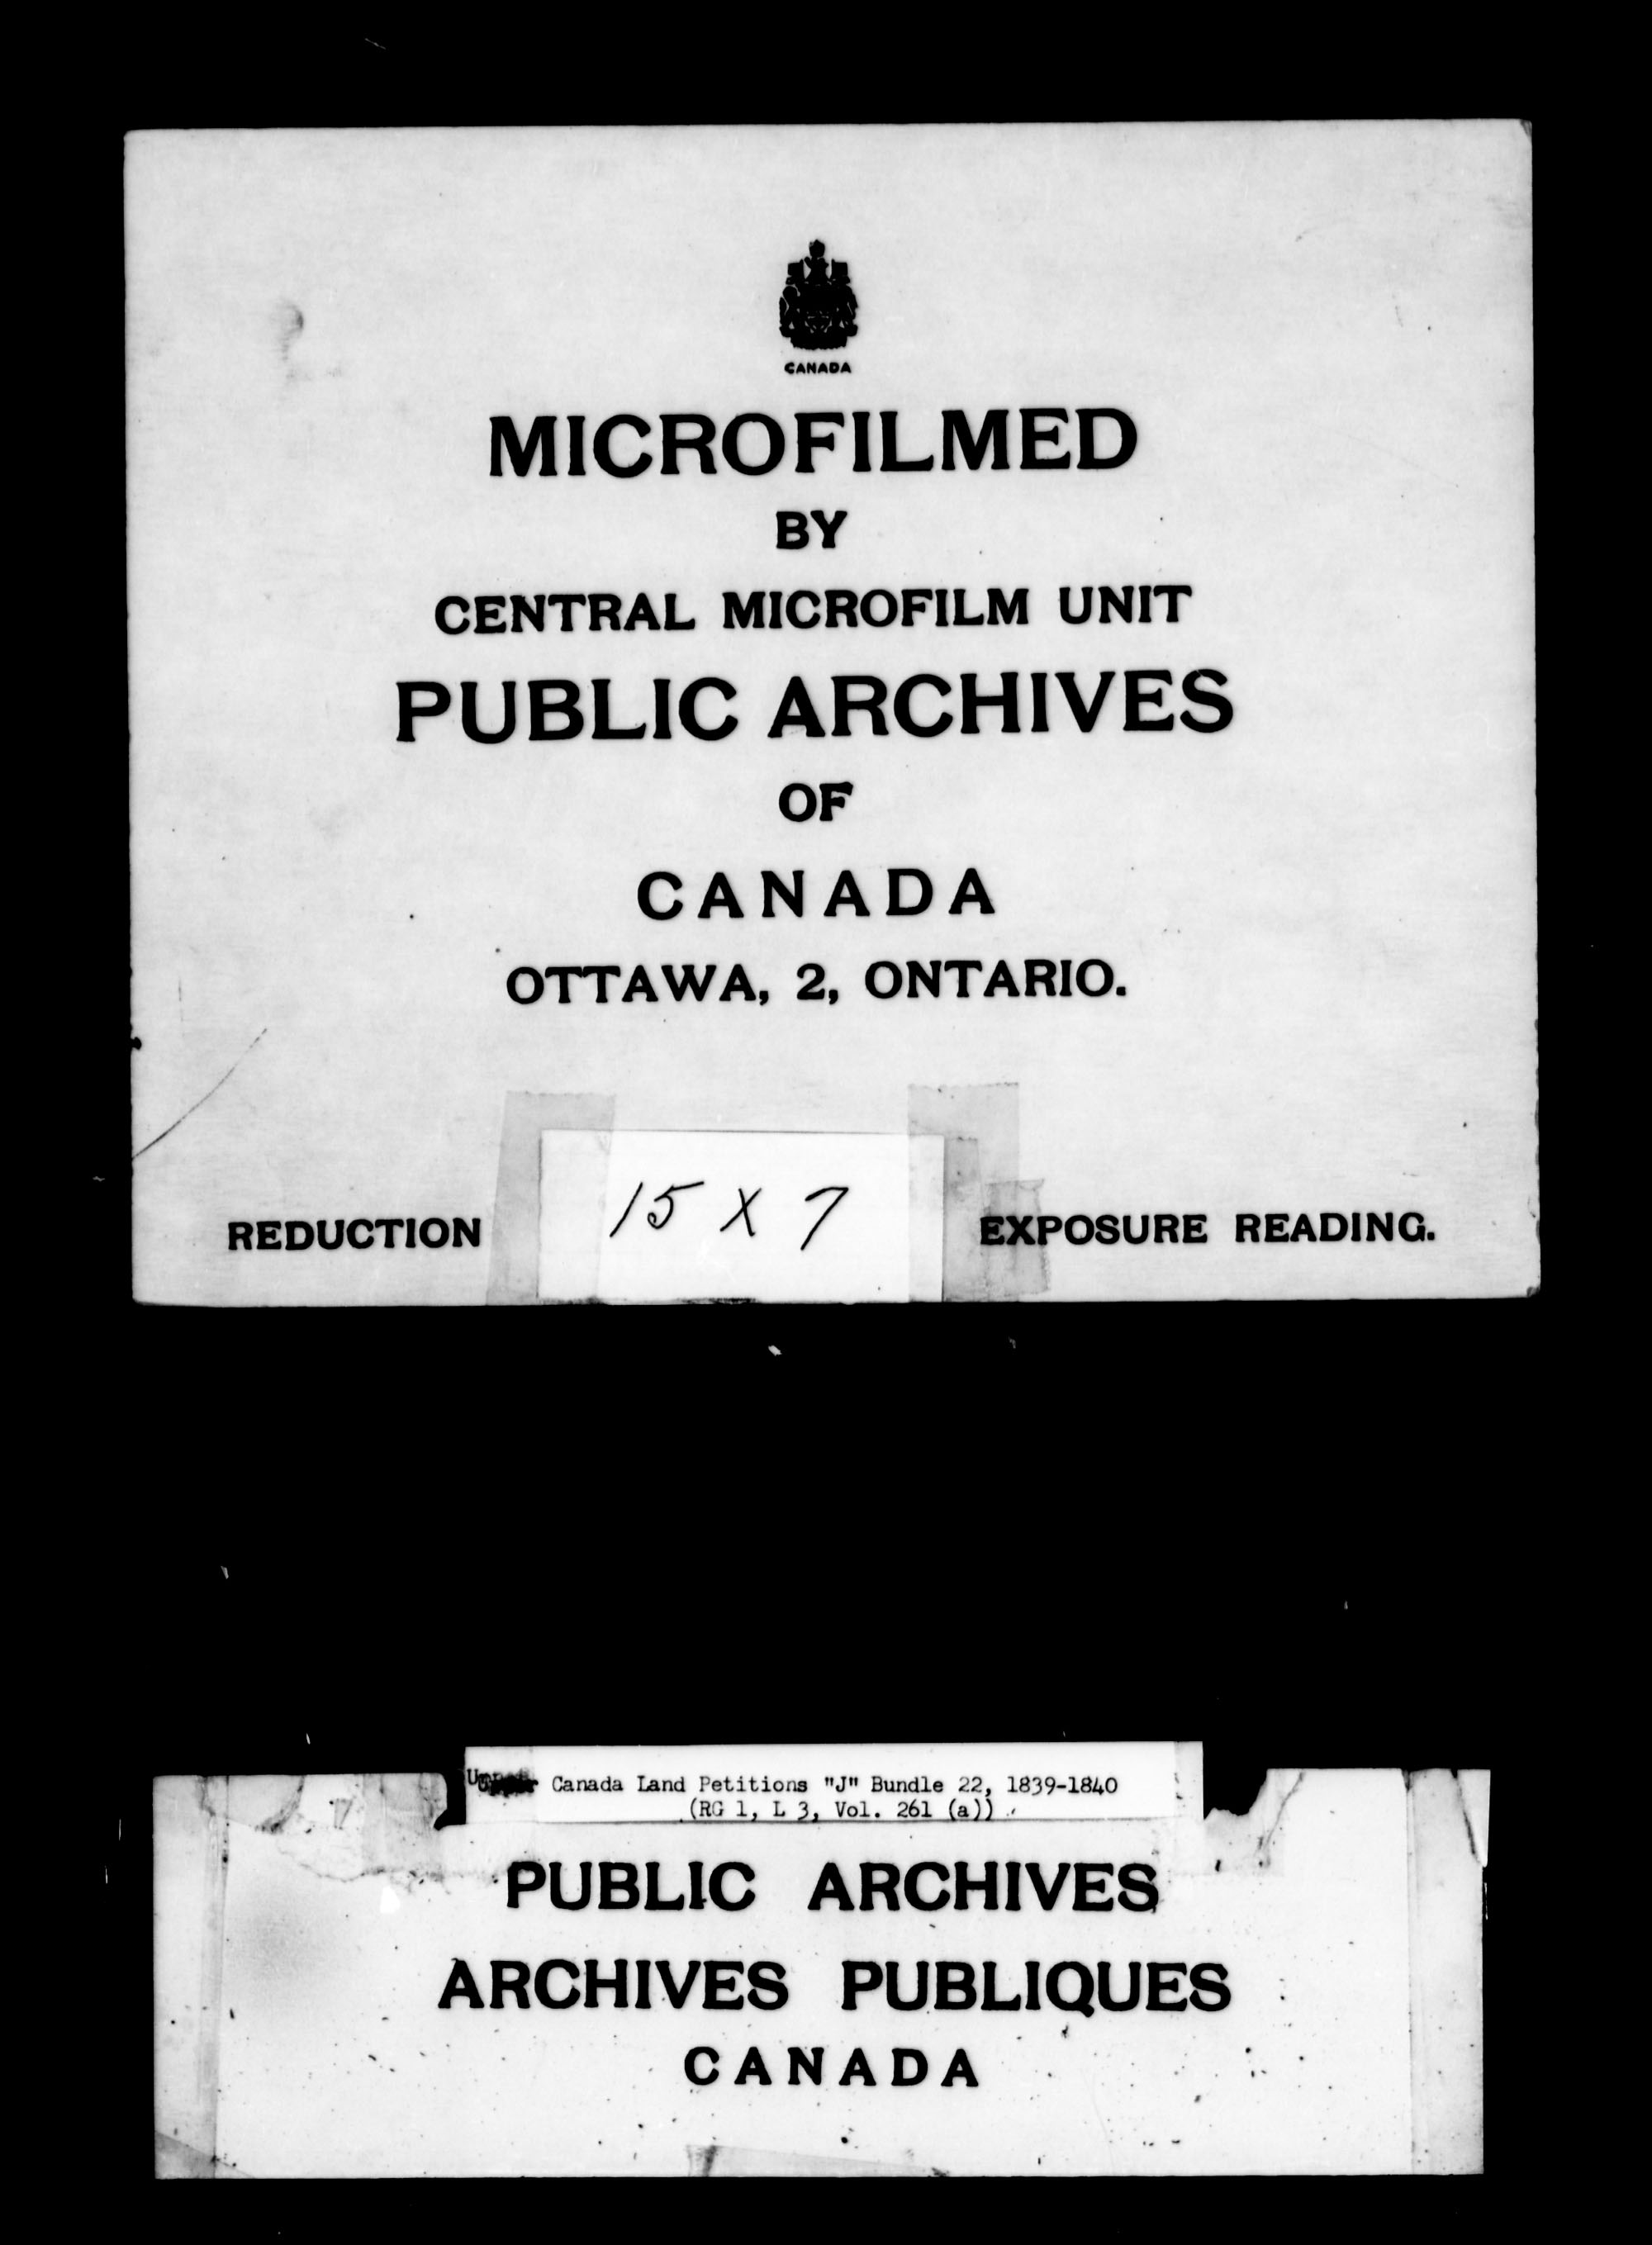 Title: Upper Canada Land Petitions (1763-1865) - Mikan Number: 205131 - Microform: c-2113